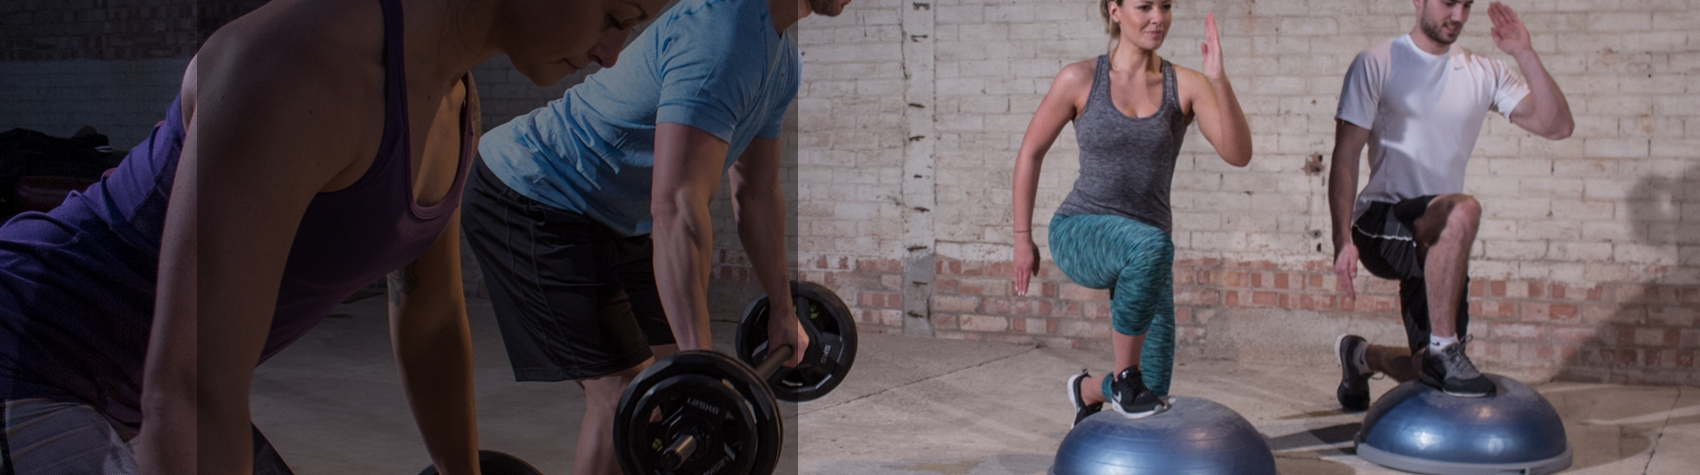 Up to 25 OFF BOSU Home Balance Trainer